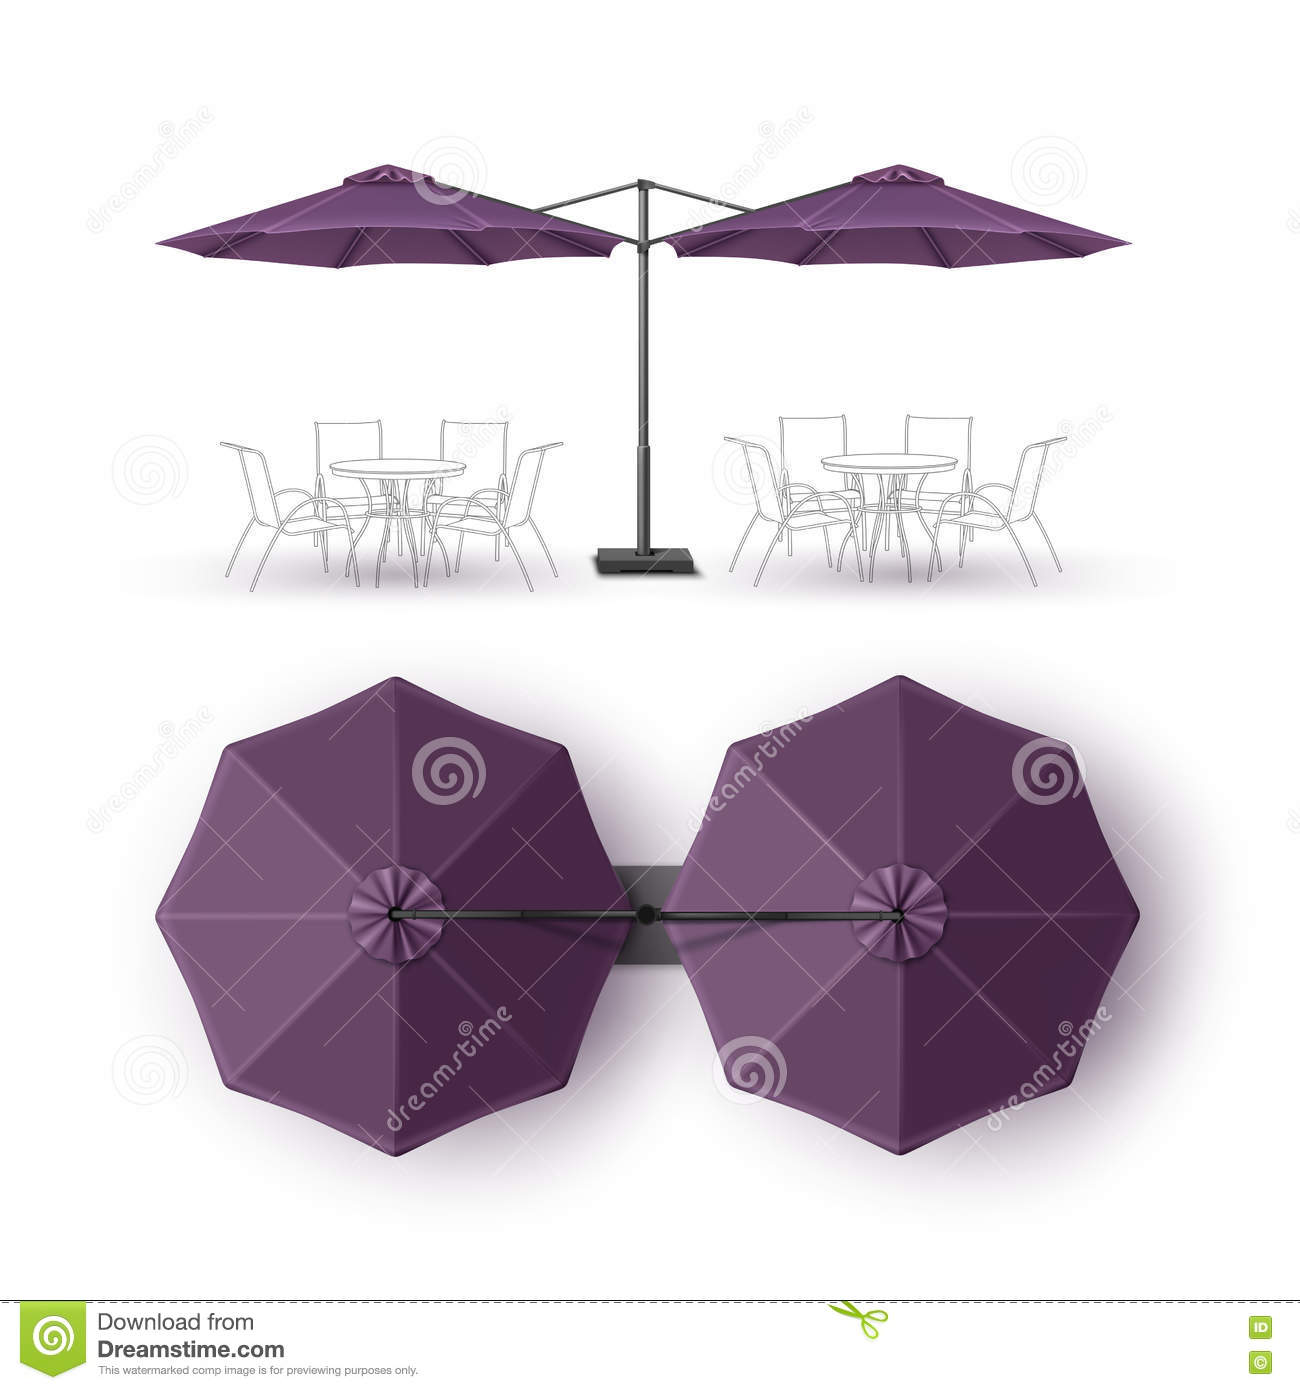 Zombaria do guarda-chuva do restaurante de Violet Outdoor Beach Cafe Lounge isolada acima